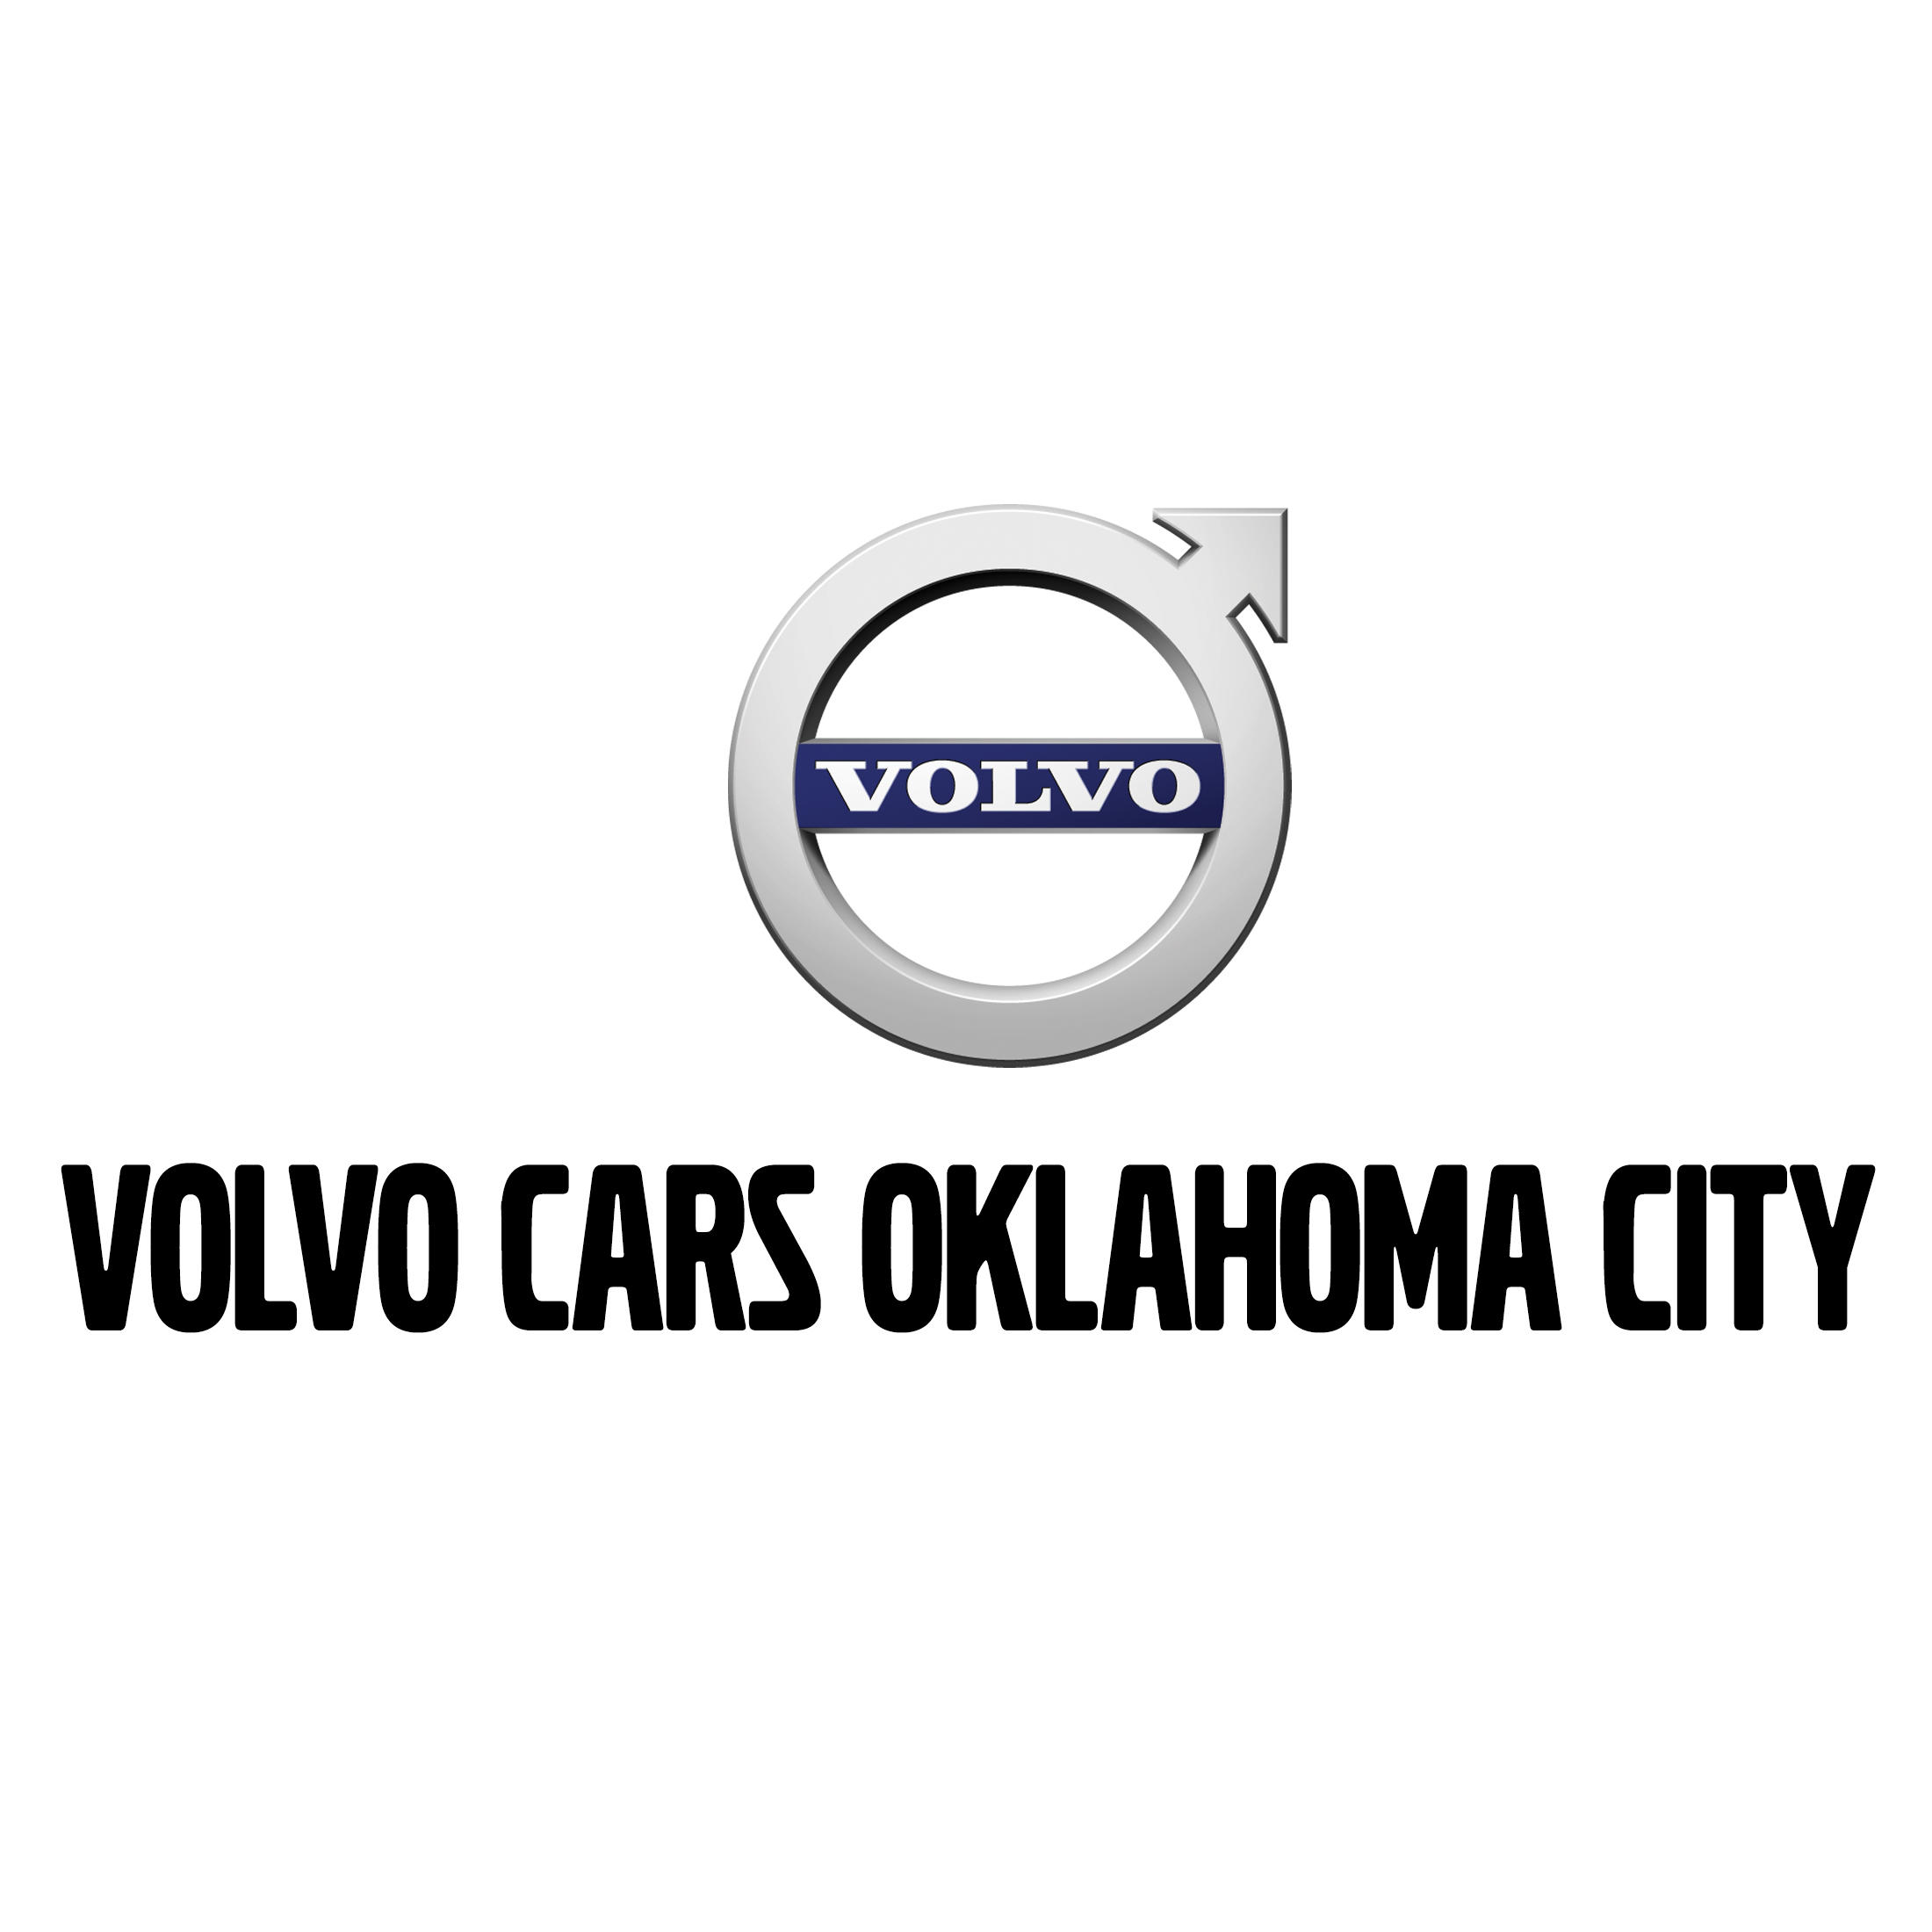 Volvo Cars Oklahoma City - Oklahoma City, OK - Auto Dealers